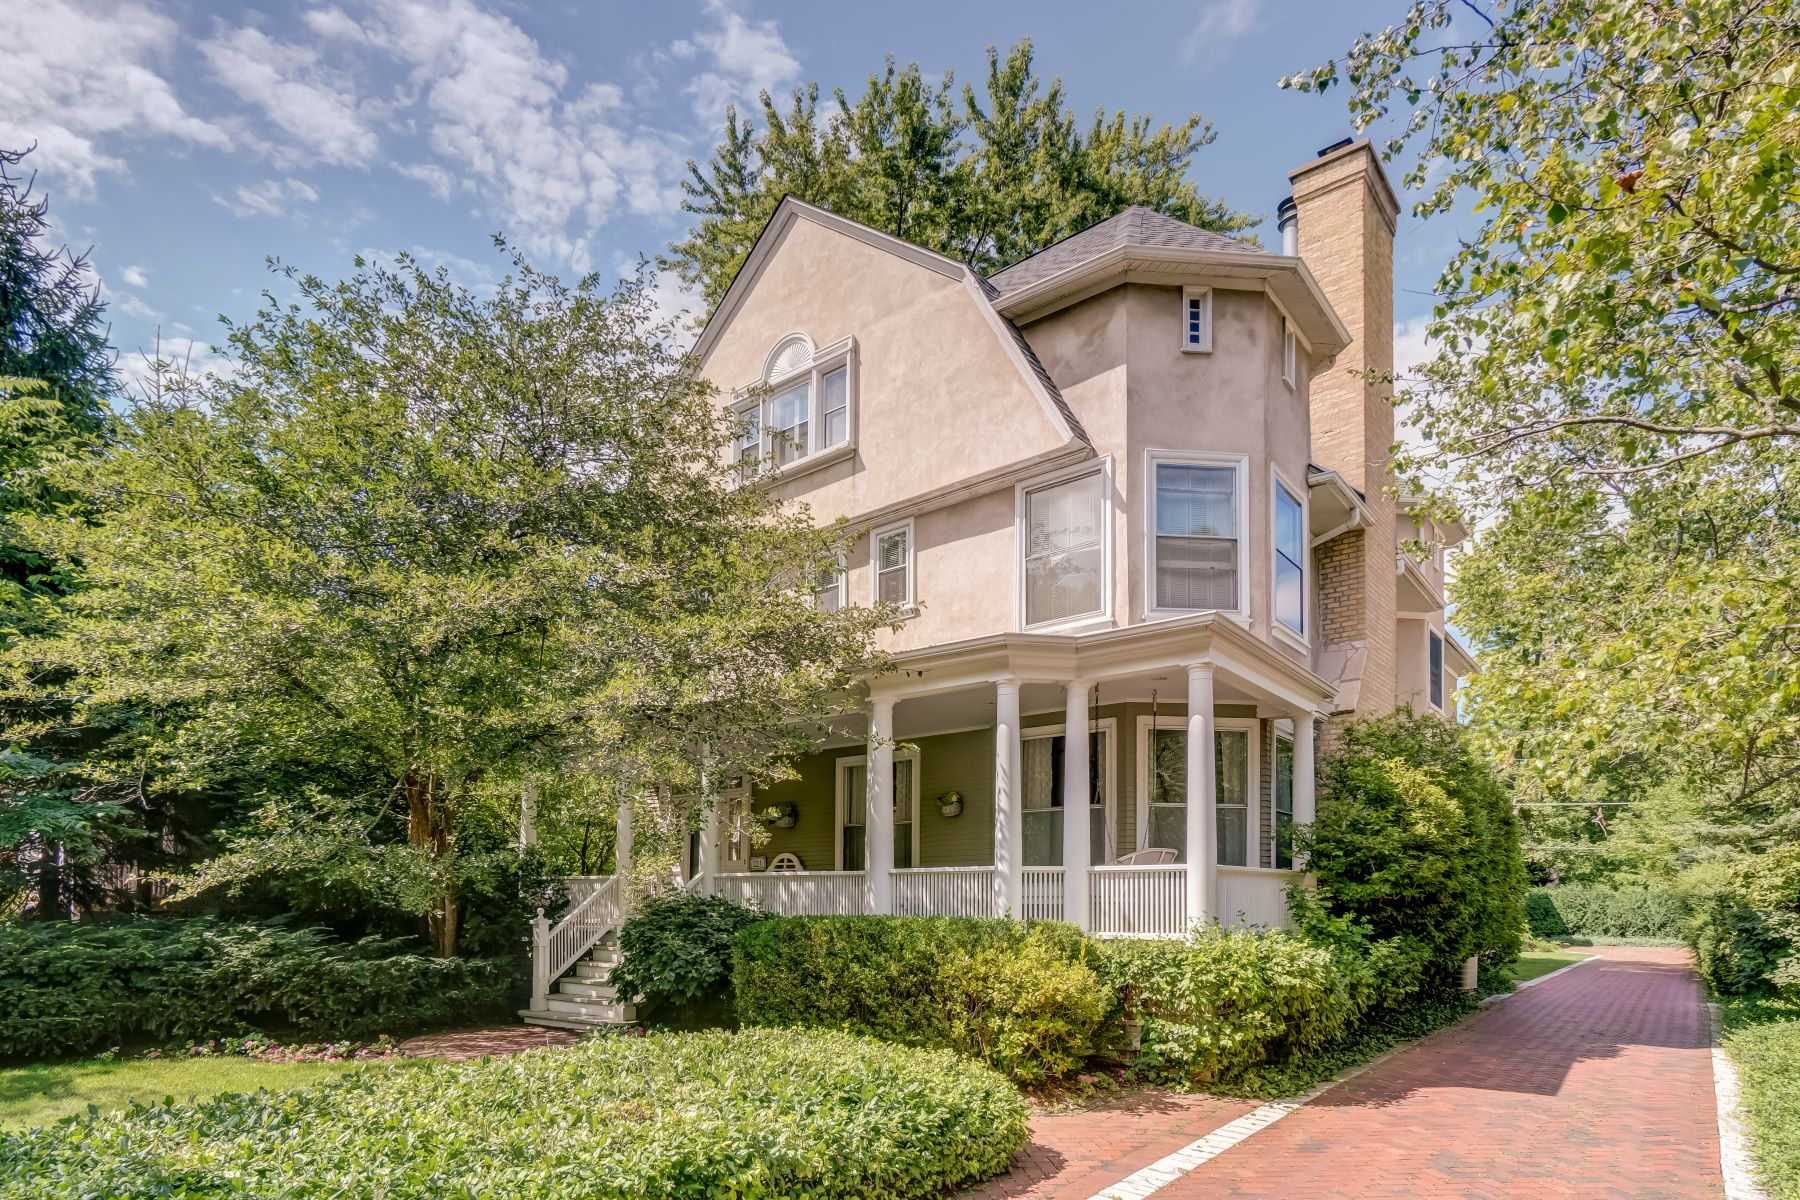 Single Family Home for Active at Light Filled Victorian Home 221 Dempster Street Evanston, Illinois 60201 United States